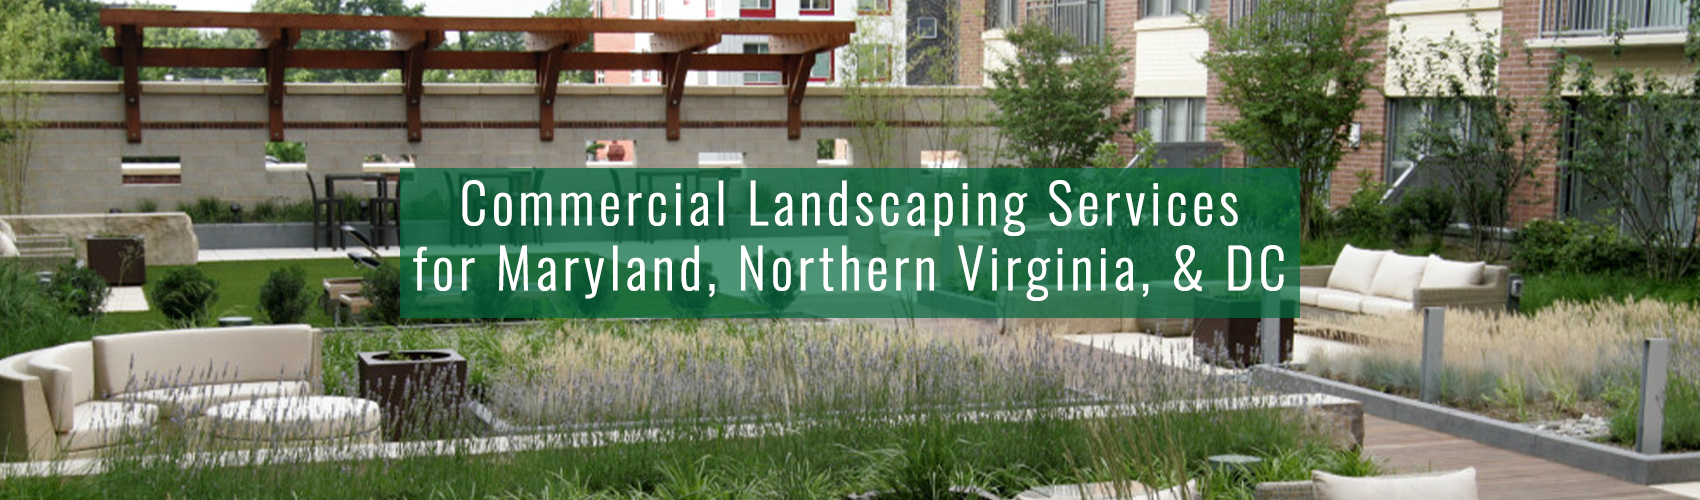 Complete Landscaping Service providing Commercial Landscaping Services